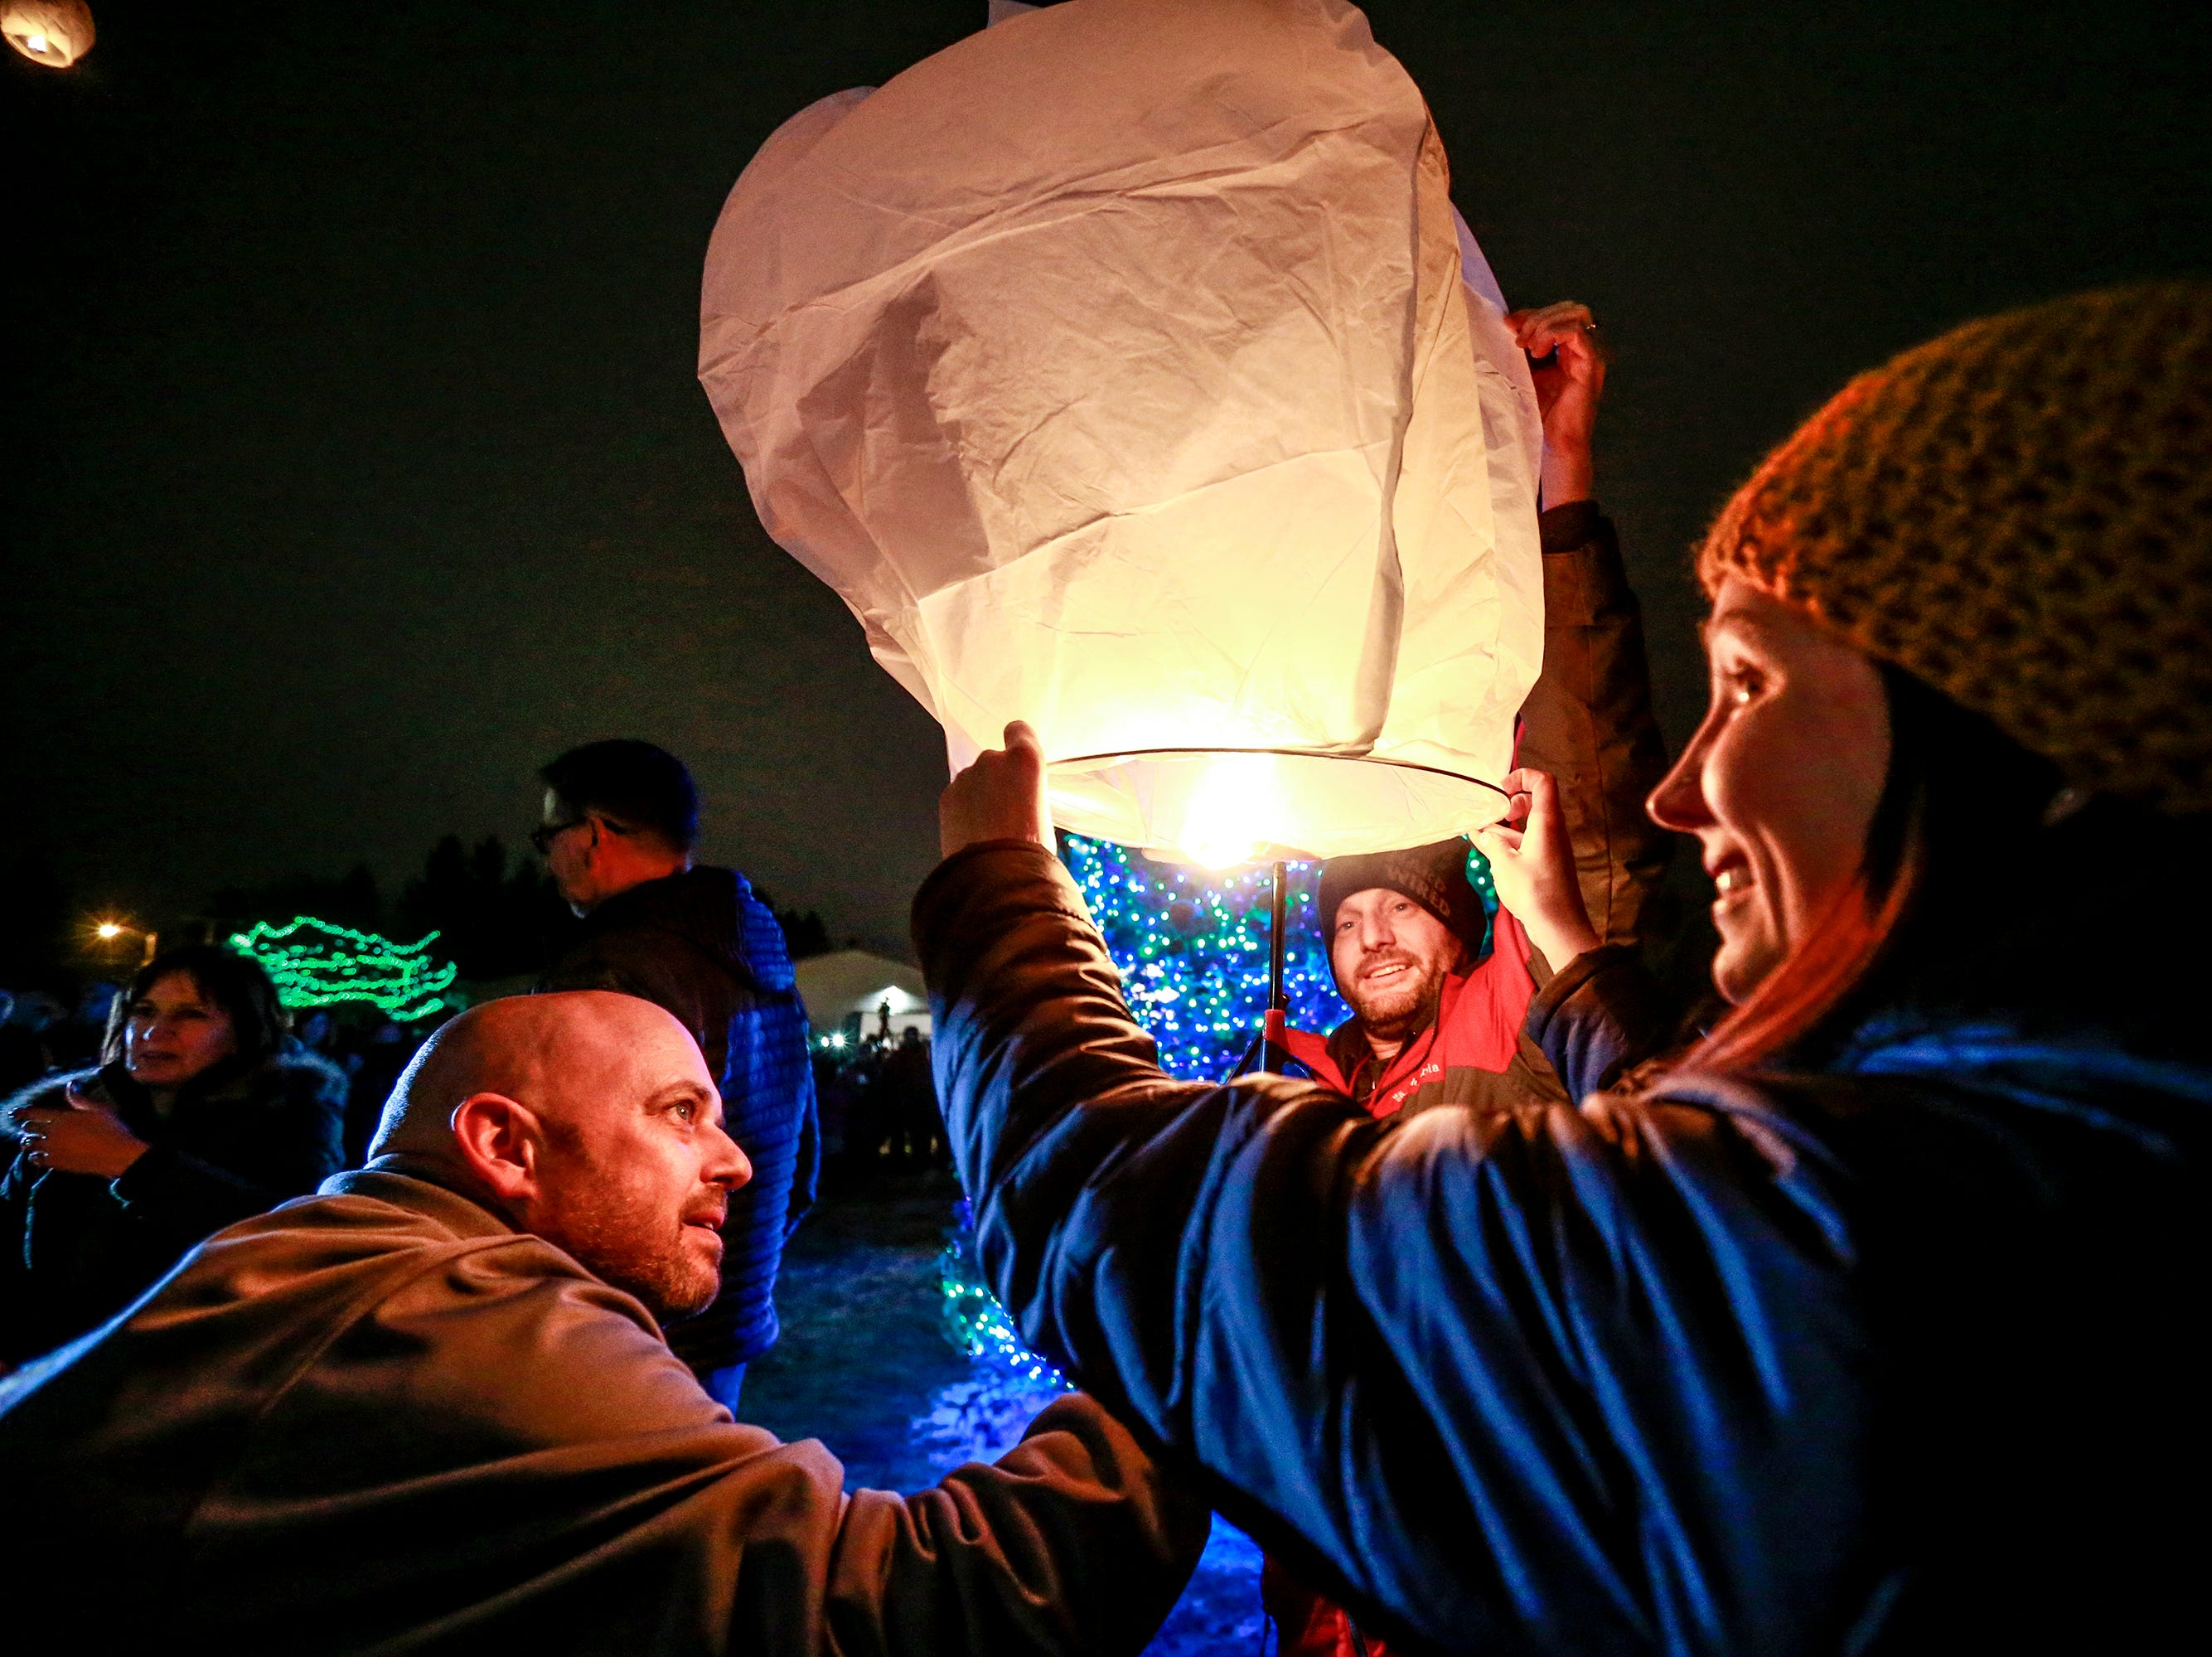 Participants light up lantern to release during the Tree of Hope for Jayme Closs ceremony Wednesday, Dec. 12, 2018, outside of Riverview Middle School in Barron, Wisc. T'xer Zhon Kha/USA TODAY NETWORK-Wisconsin